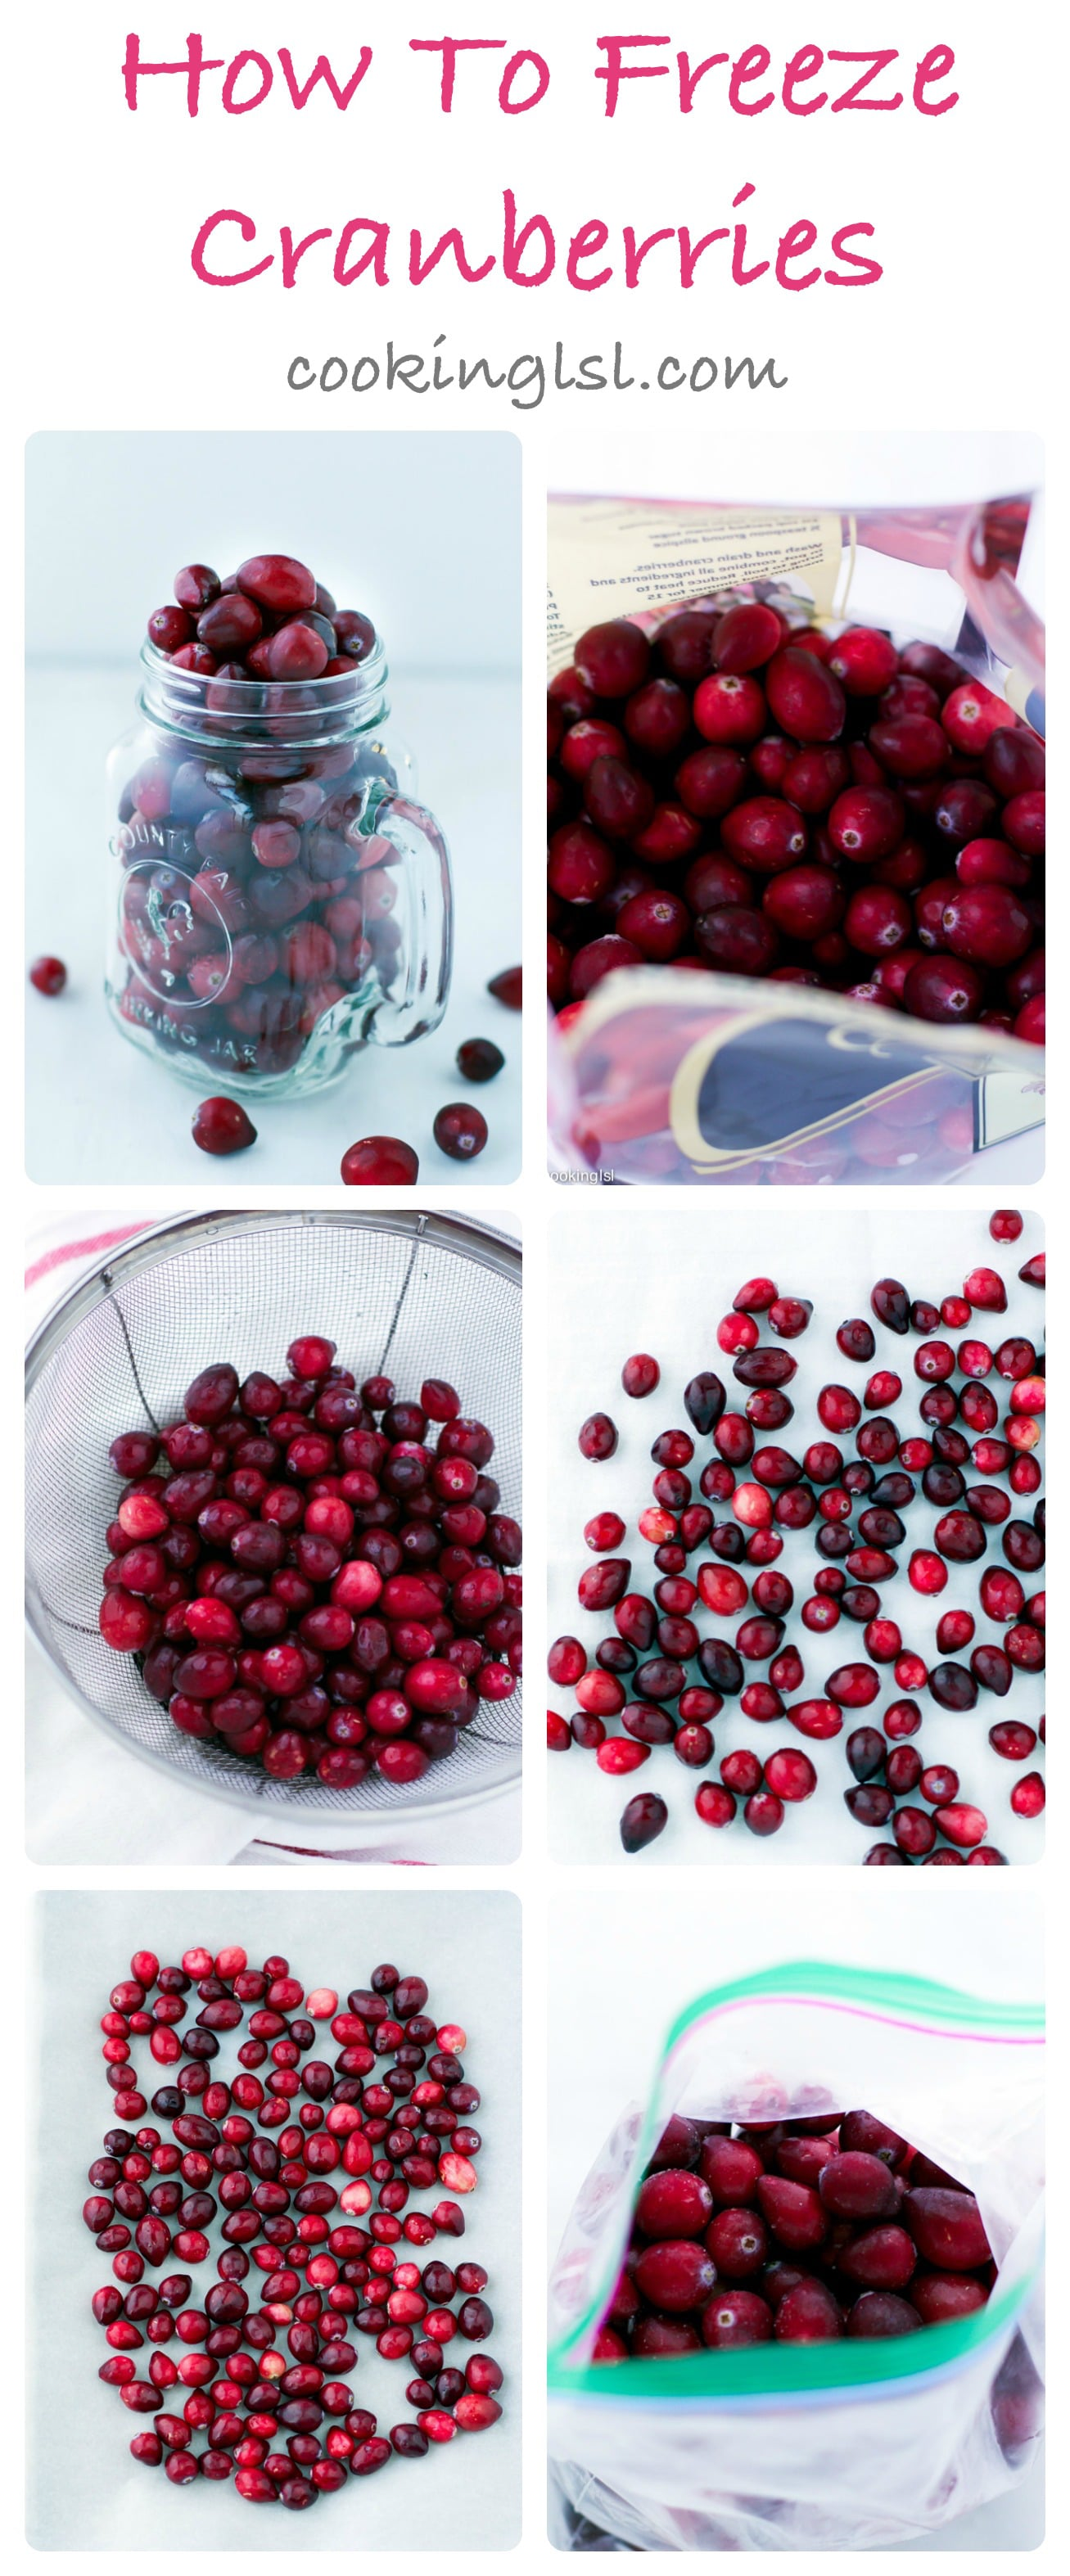 how-to-freeze-cranberries-for-sauce-muffins-perfectly